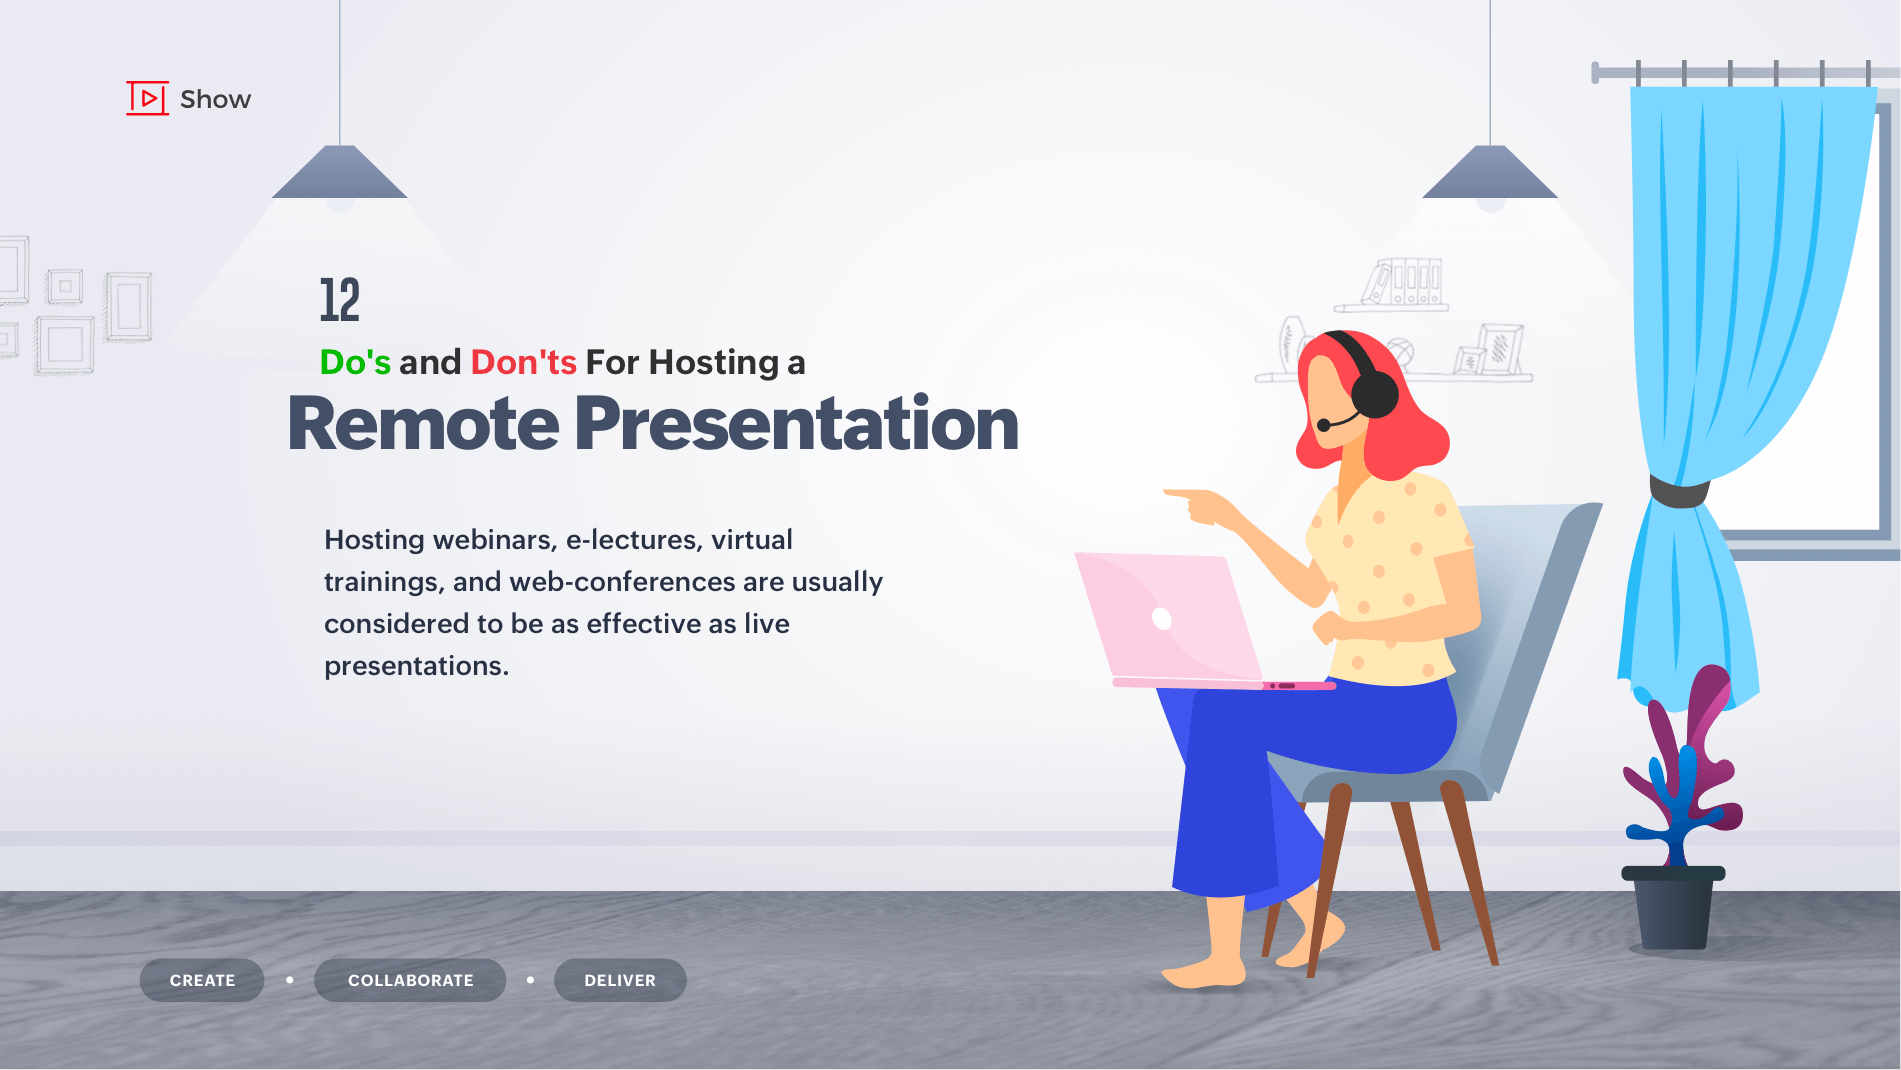 12 Do's and Don'ts for hosting a remote presentation